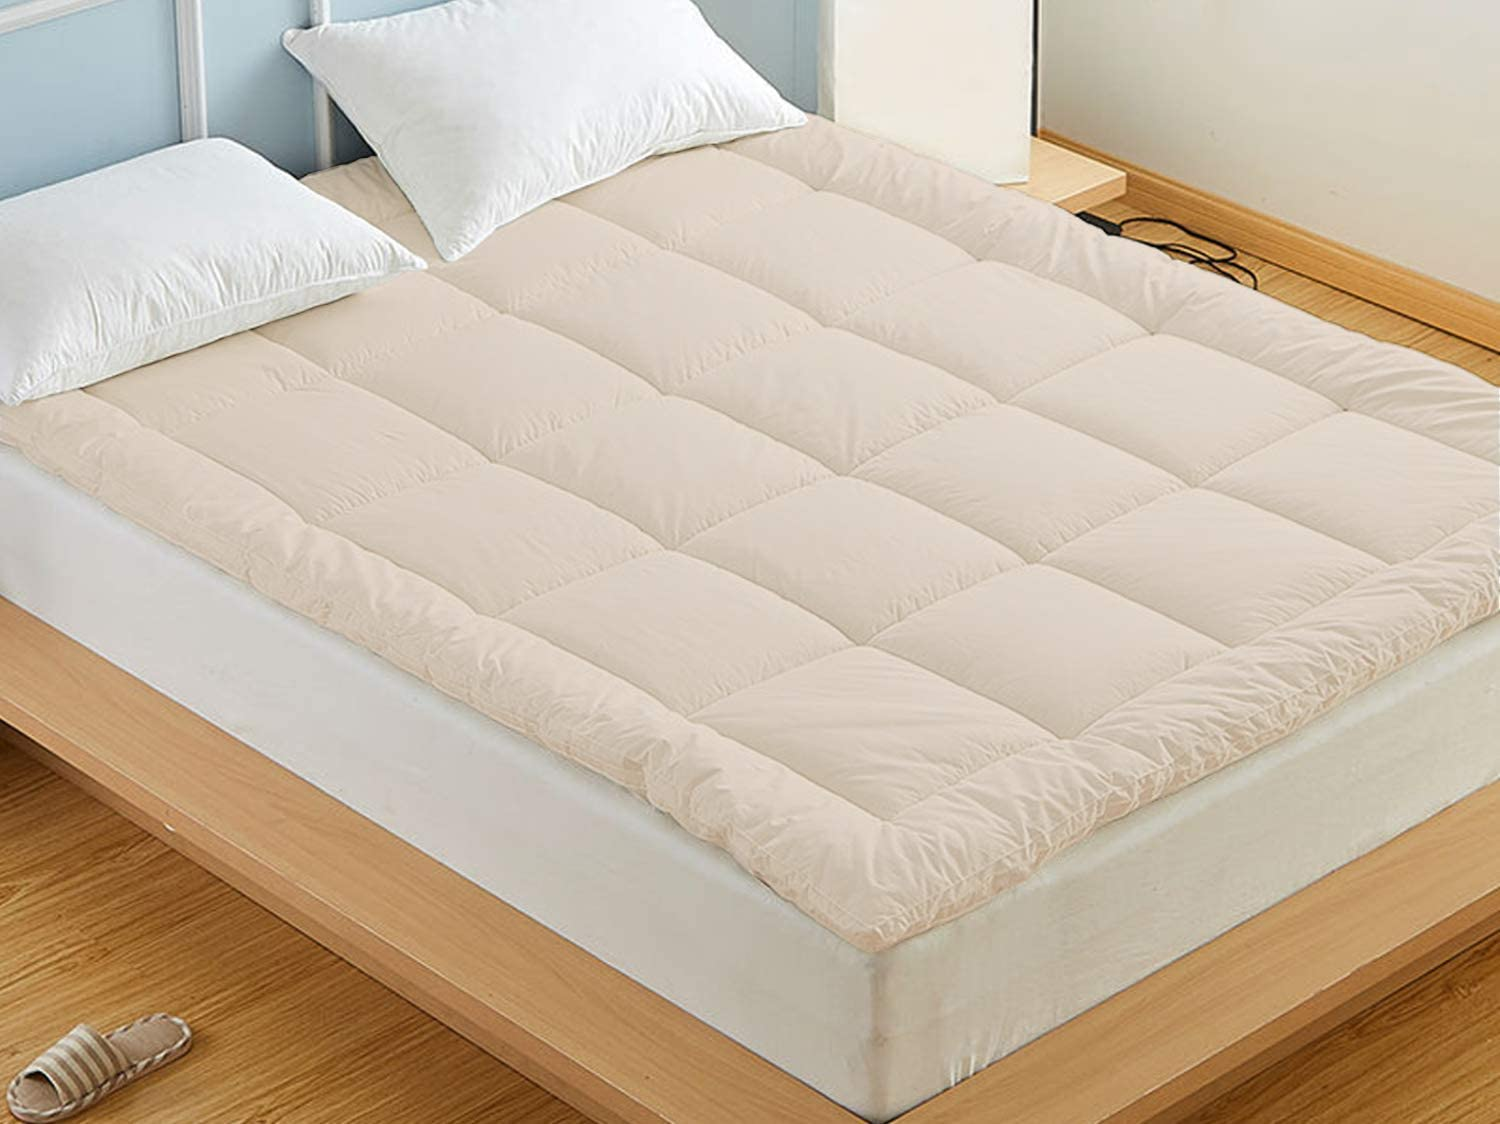 Wool Mattress Topper with Organic Cotton Cover King